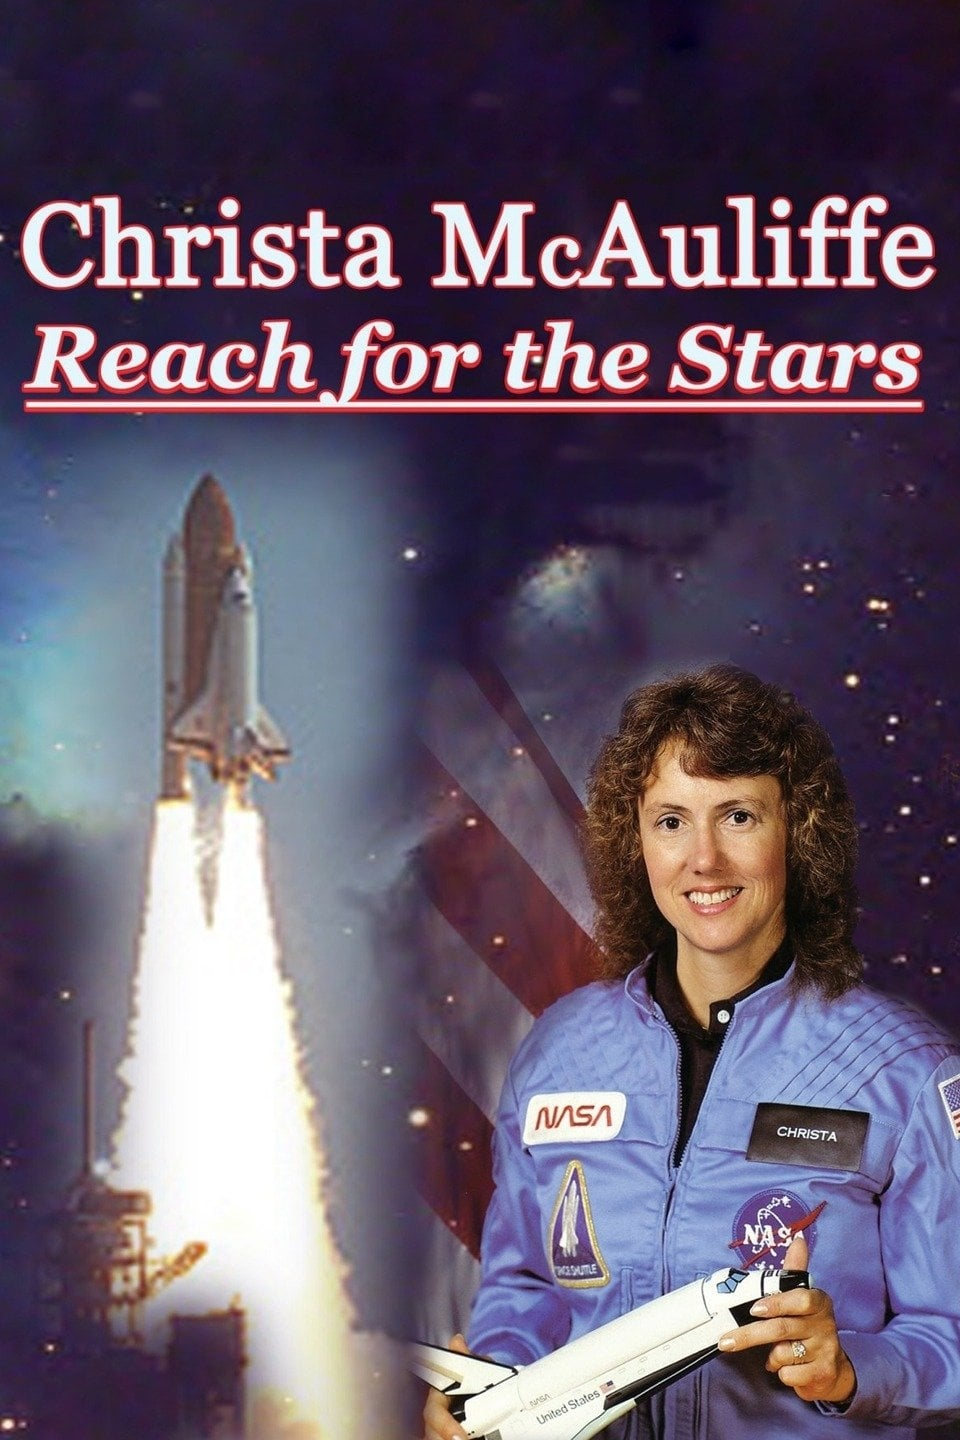 Christa McAuliffe: Reach for the Stars on FREECABLE TV